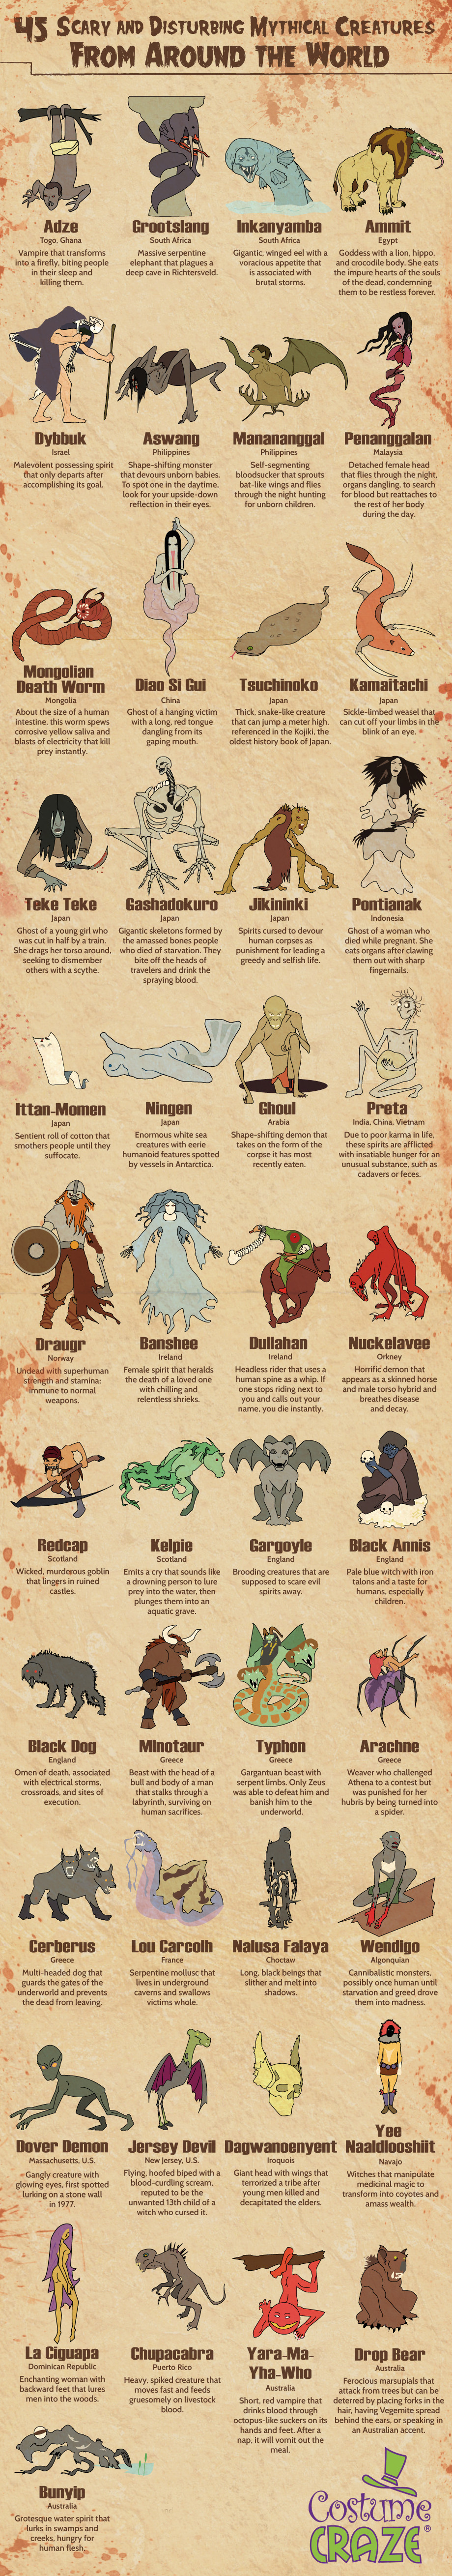 45 Mythical and Grotesque Creatures that Inhabit Planet Earth - Infographic